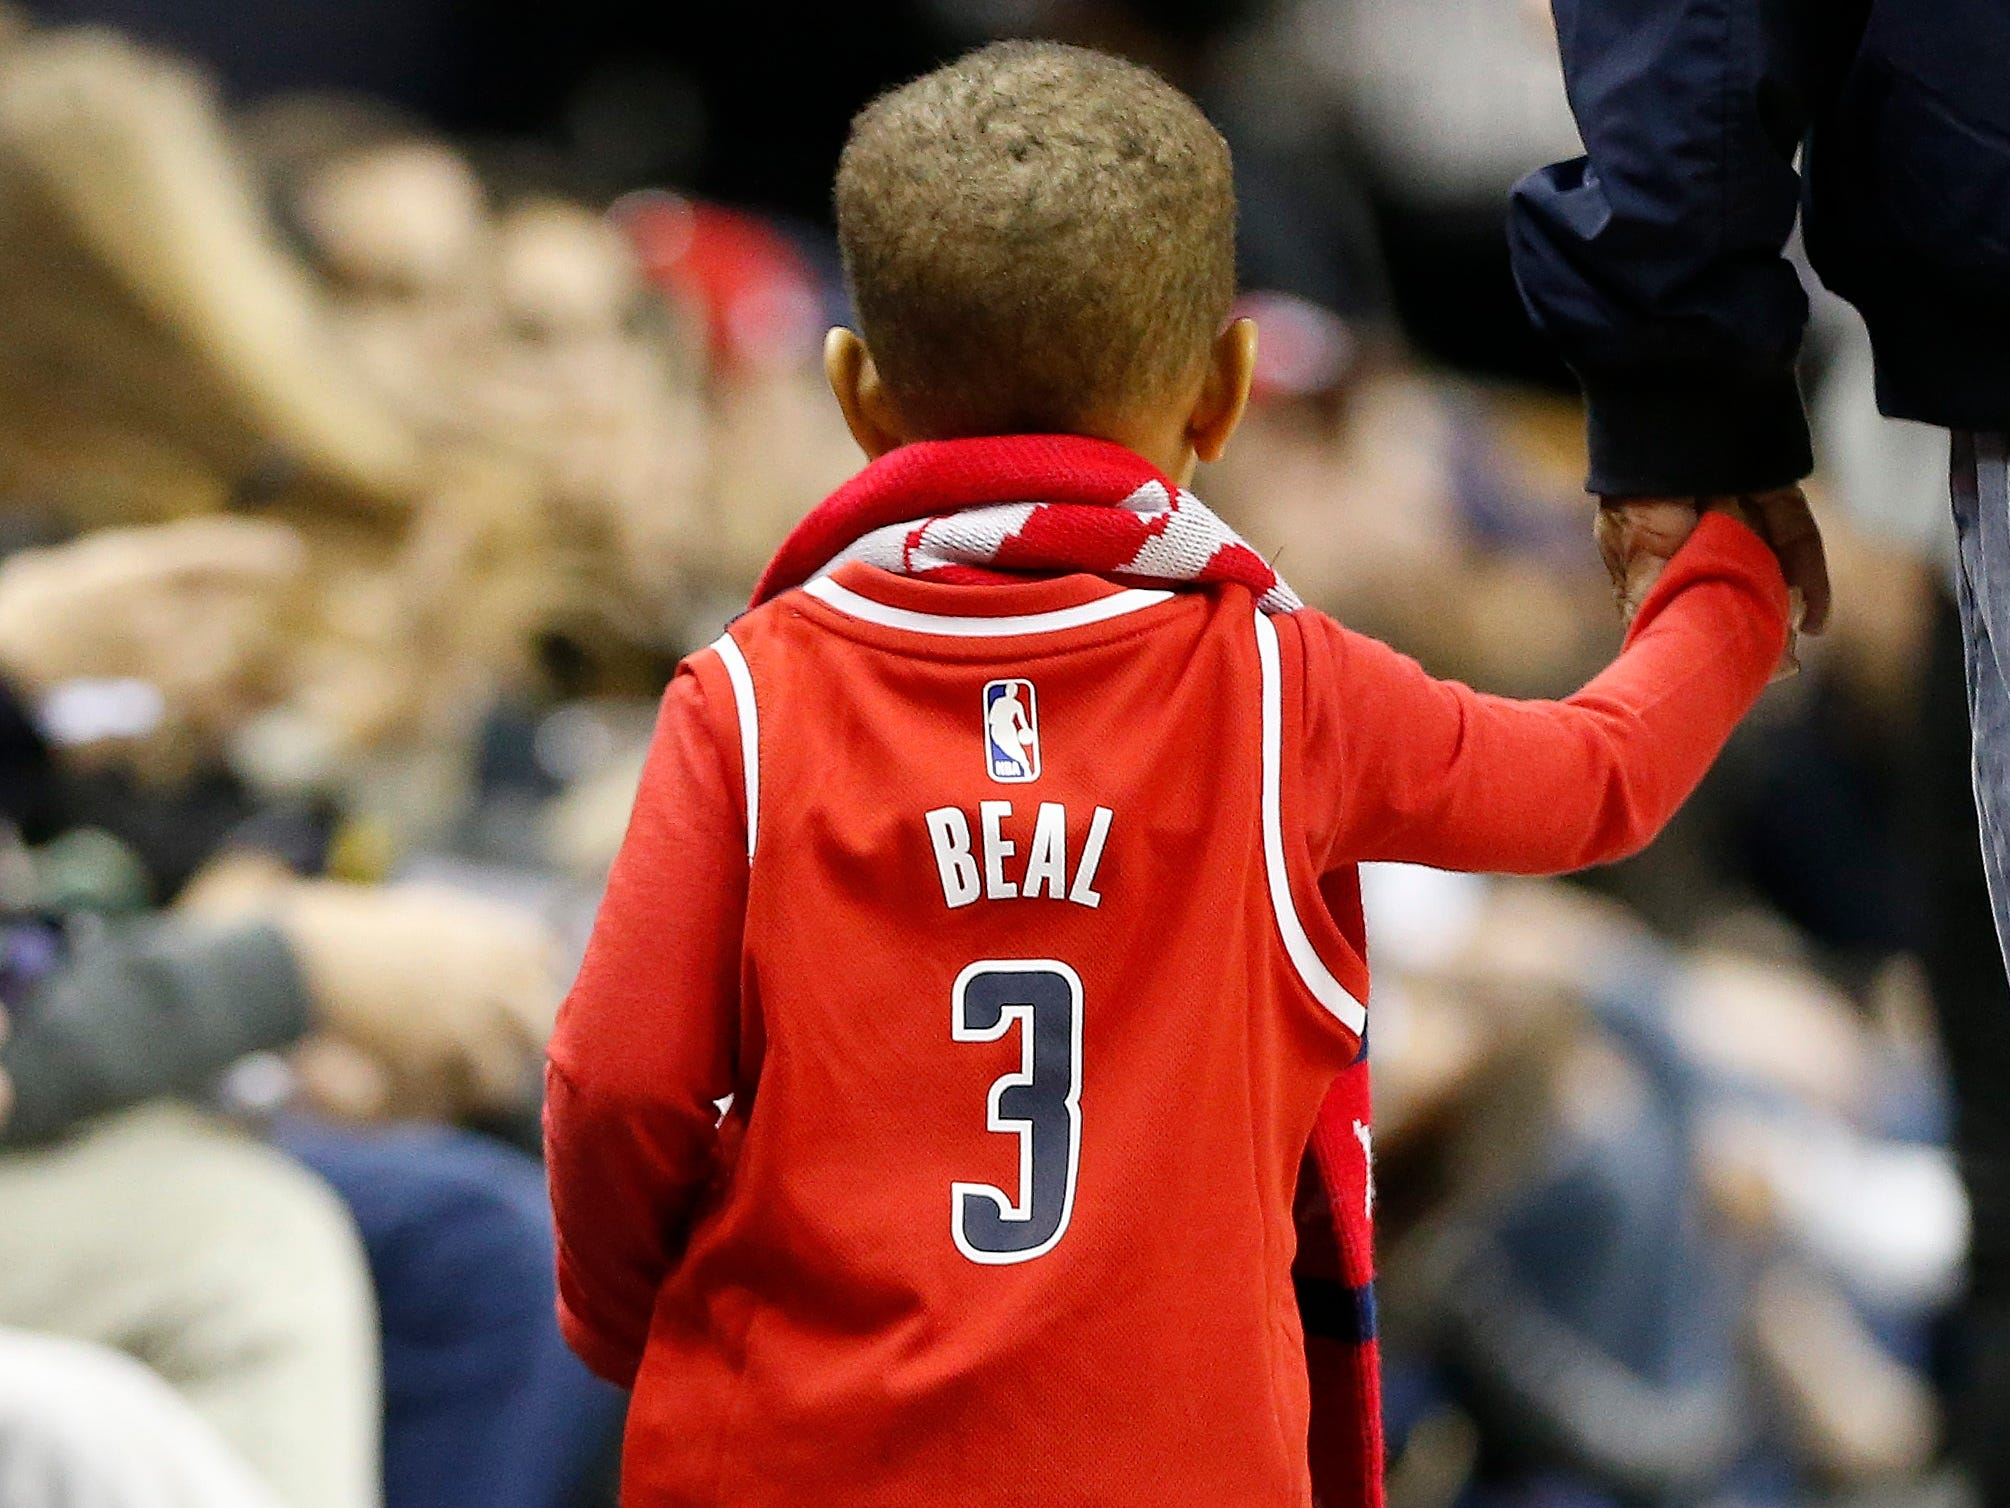 Nov. 18: A young fan sports his Bradley Beal jersey at the Wizards-Blazers game in Washington.